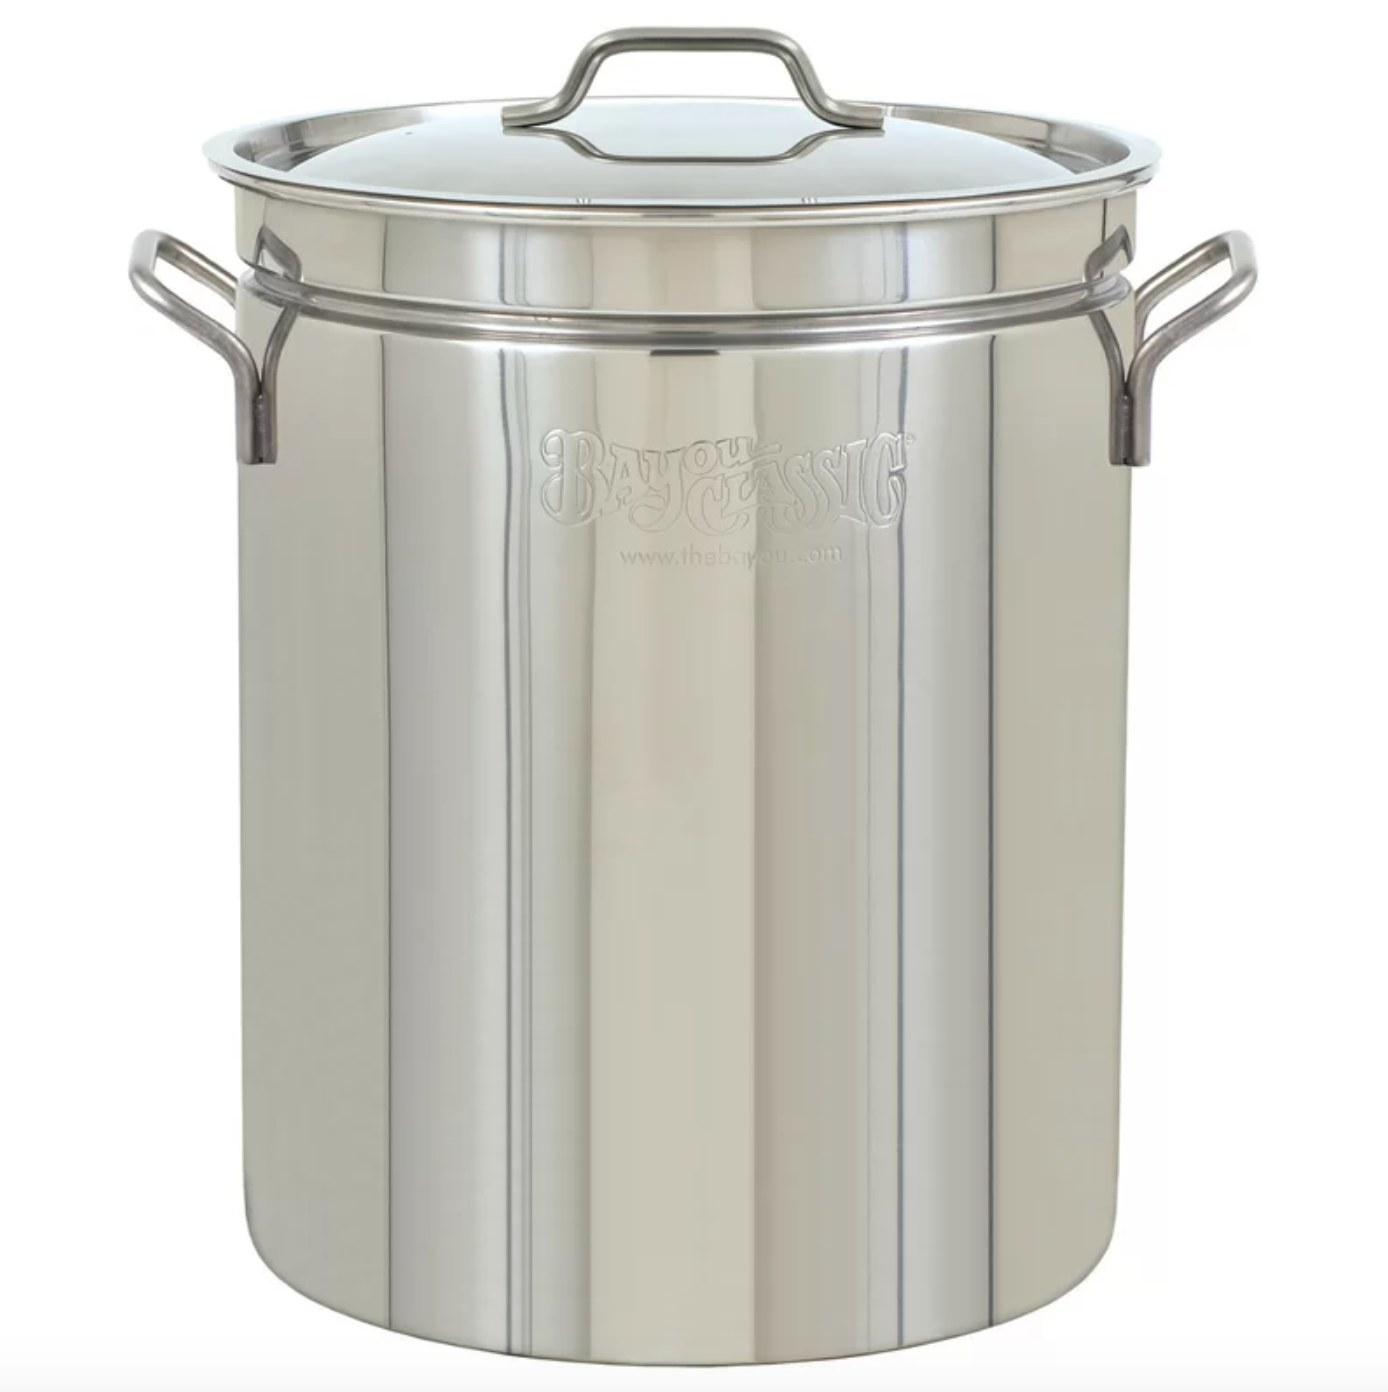 The stainless steel steamer pot with a lid